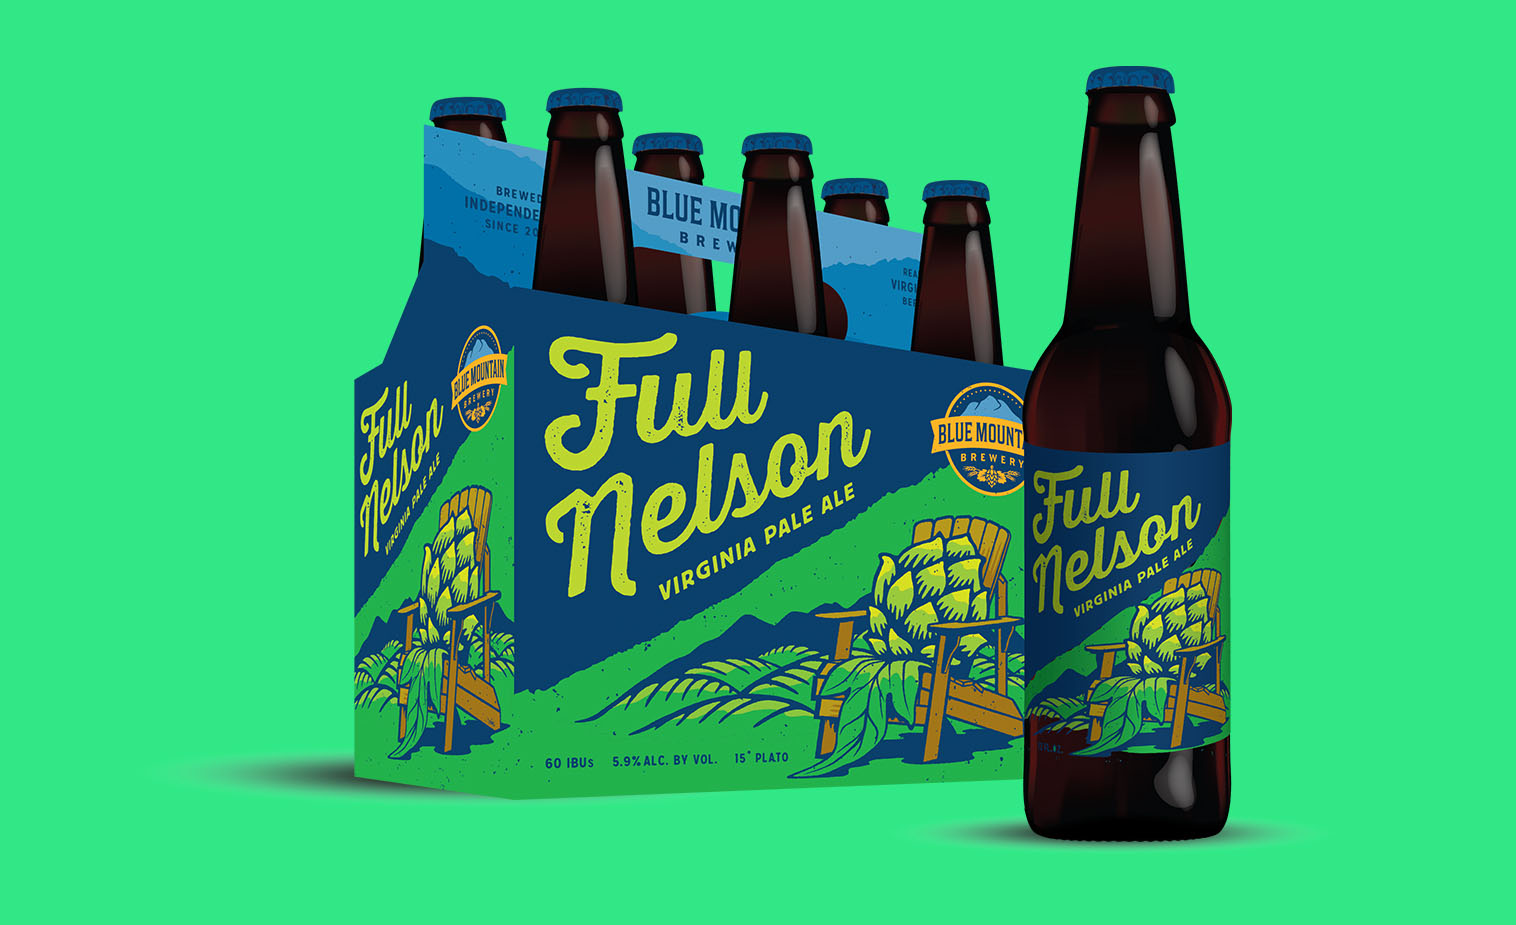 Beer – Blue Mountain Brewery